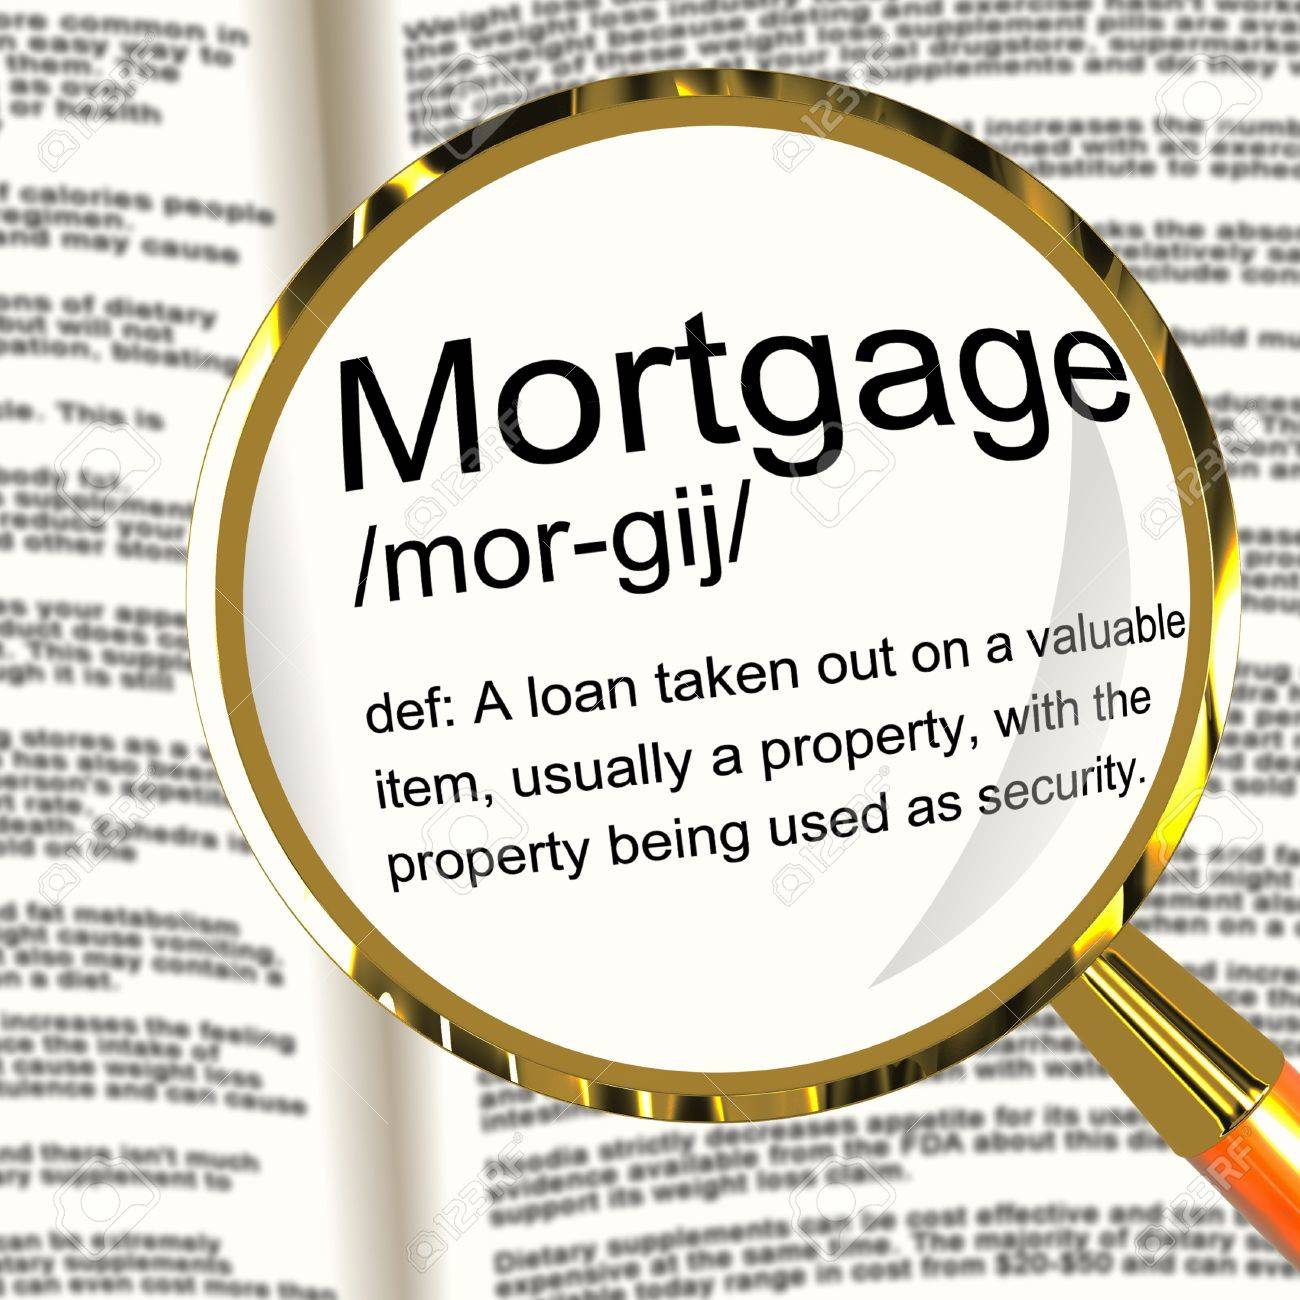 Mortgage Definition Magnifier Shows Property Or Real Estate Loan Stock Photo - 13564526